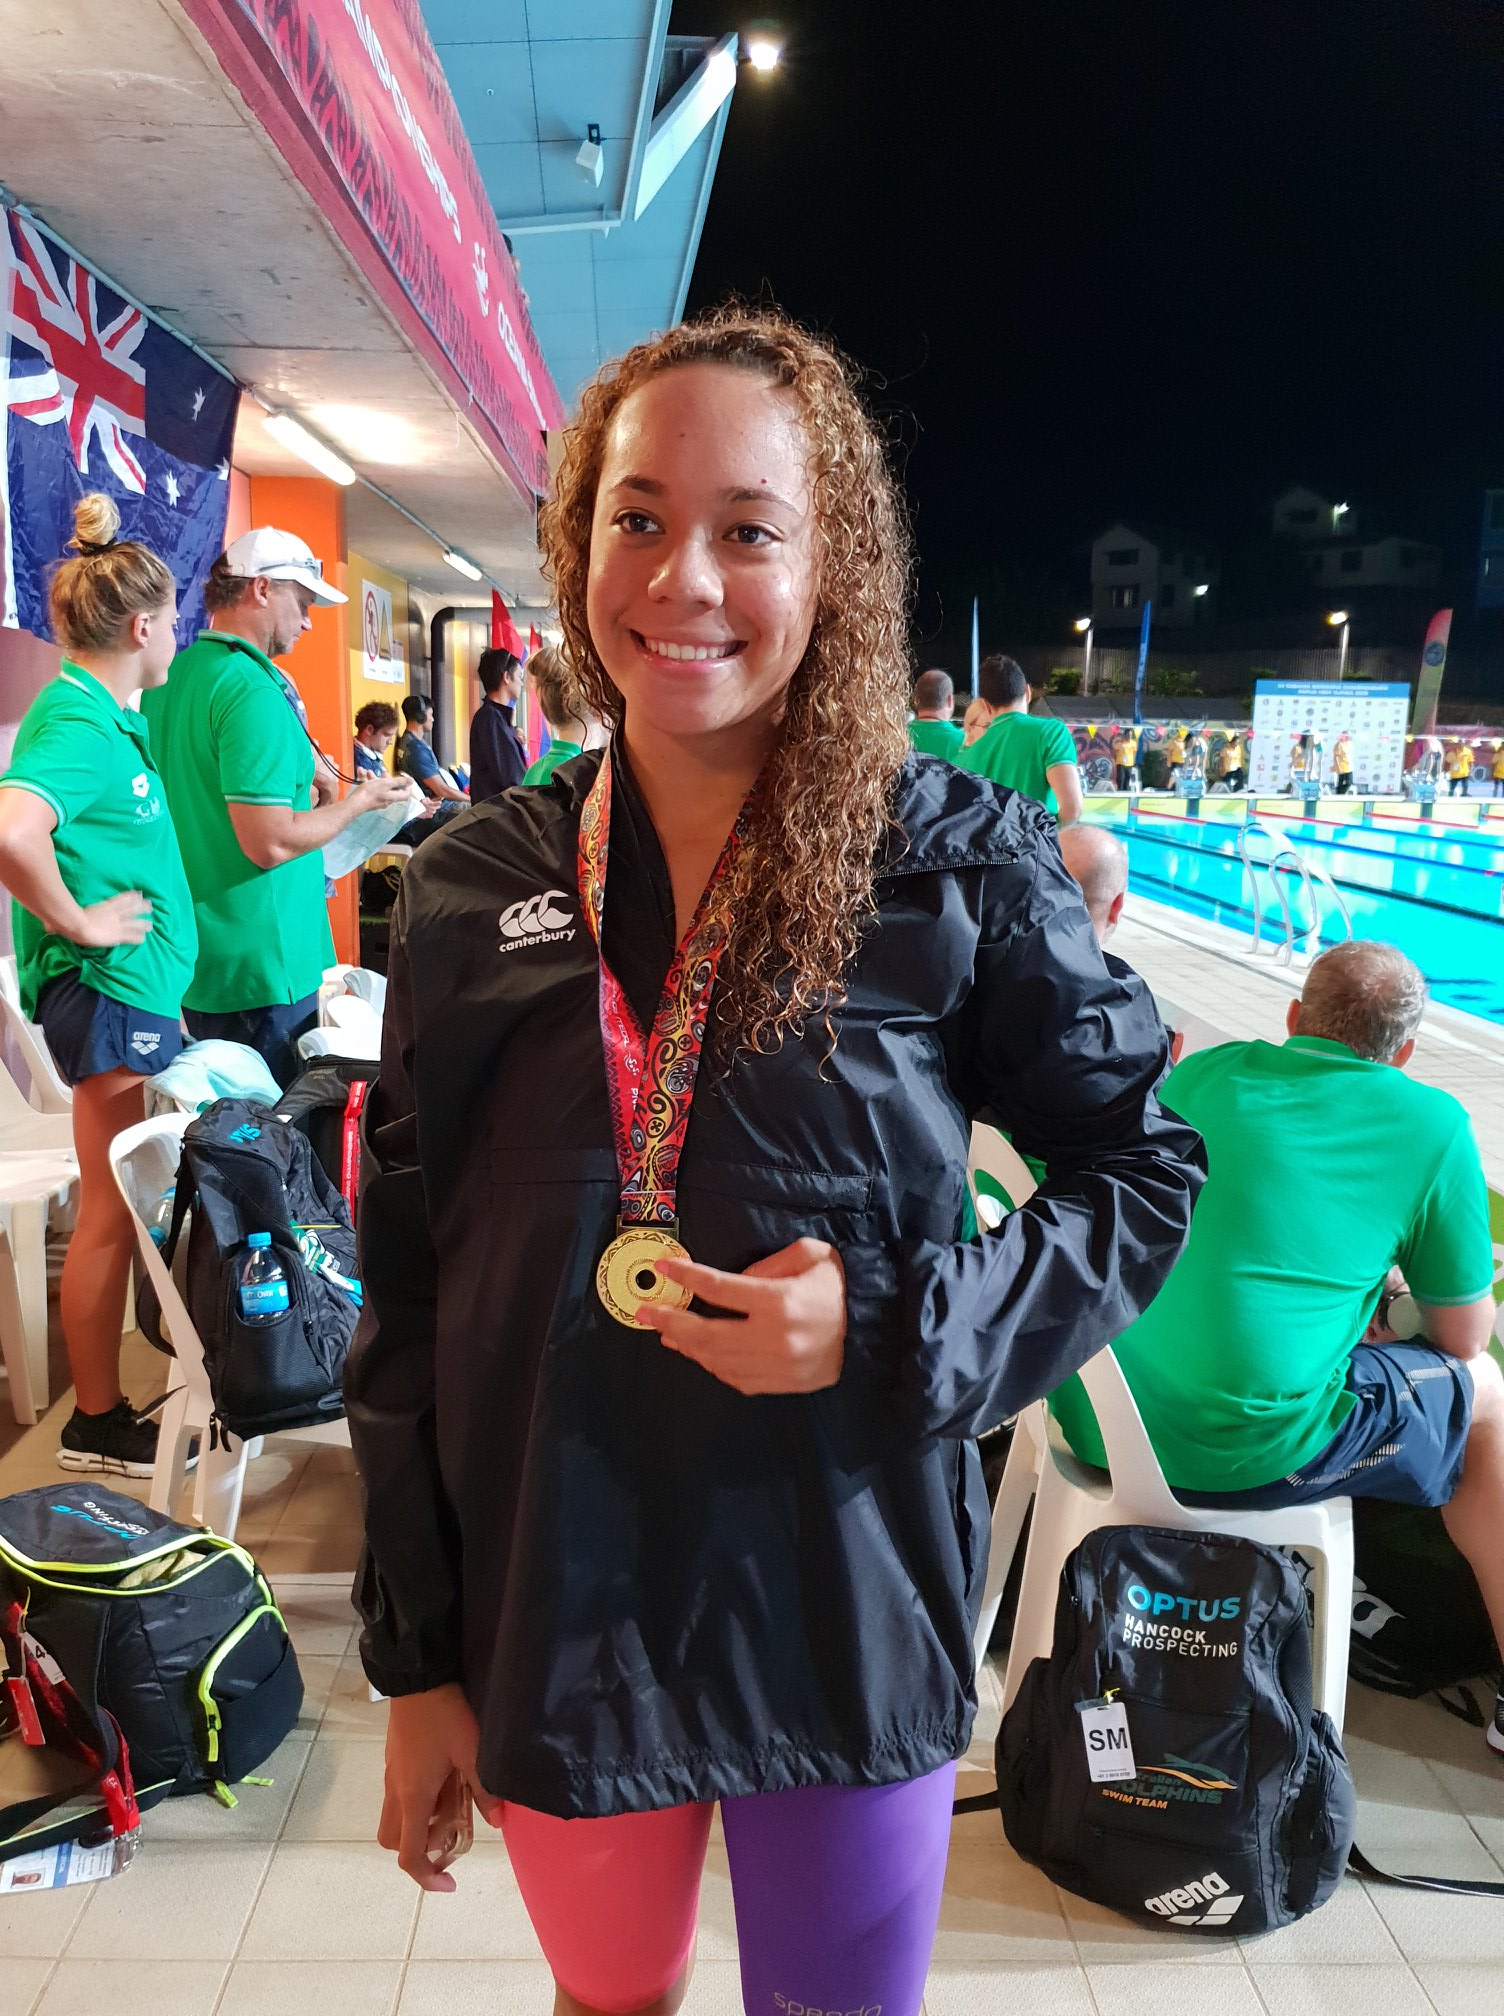 National women's swimmer Yolani Blake shows her medal during the 12th Oceania Swimming Championships in Port Moresby, Papua New Guinea on June 27, 2018. Photo:  Fiji Swimming